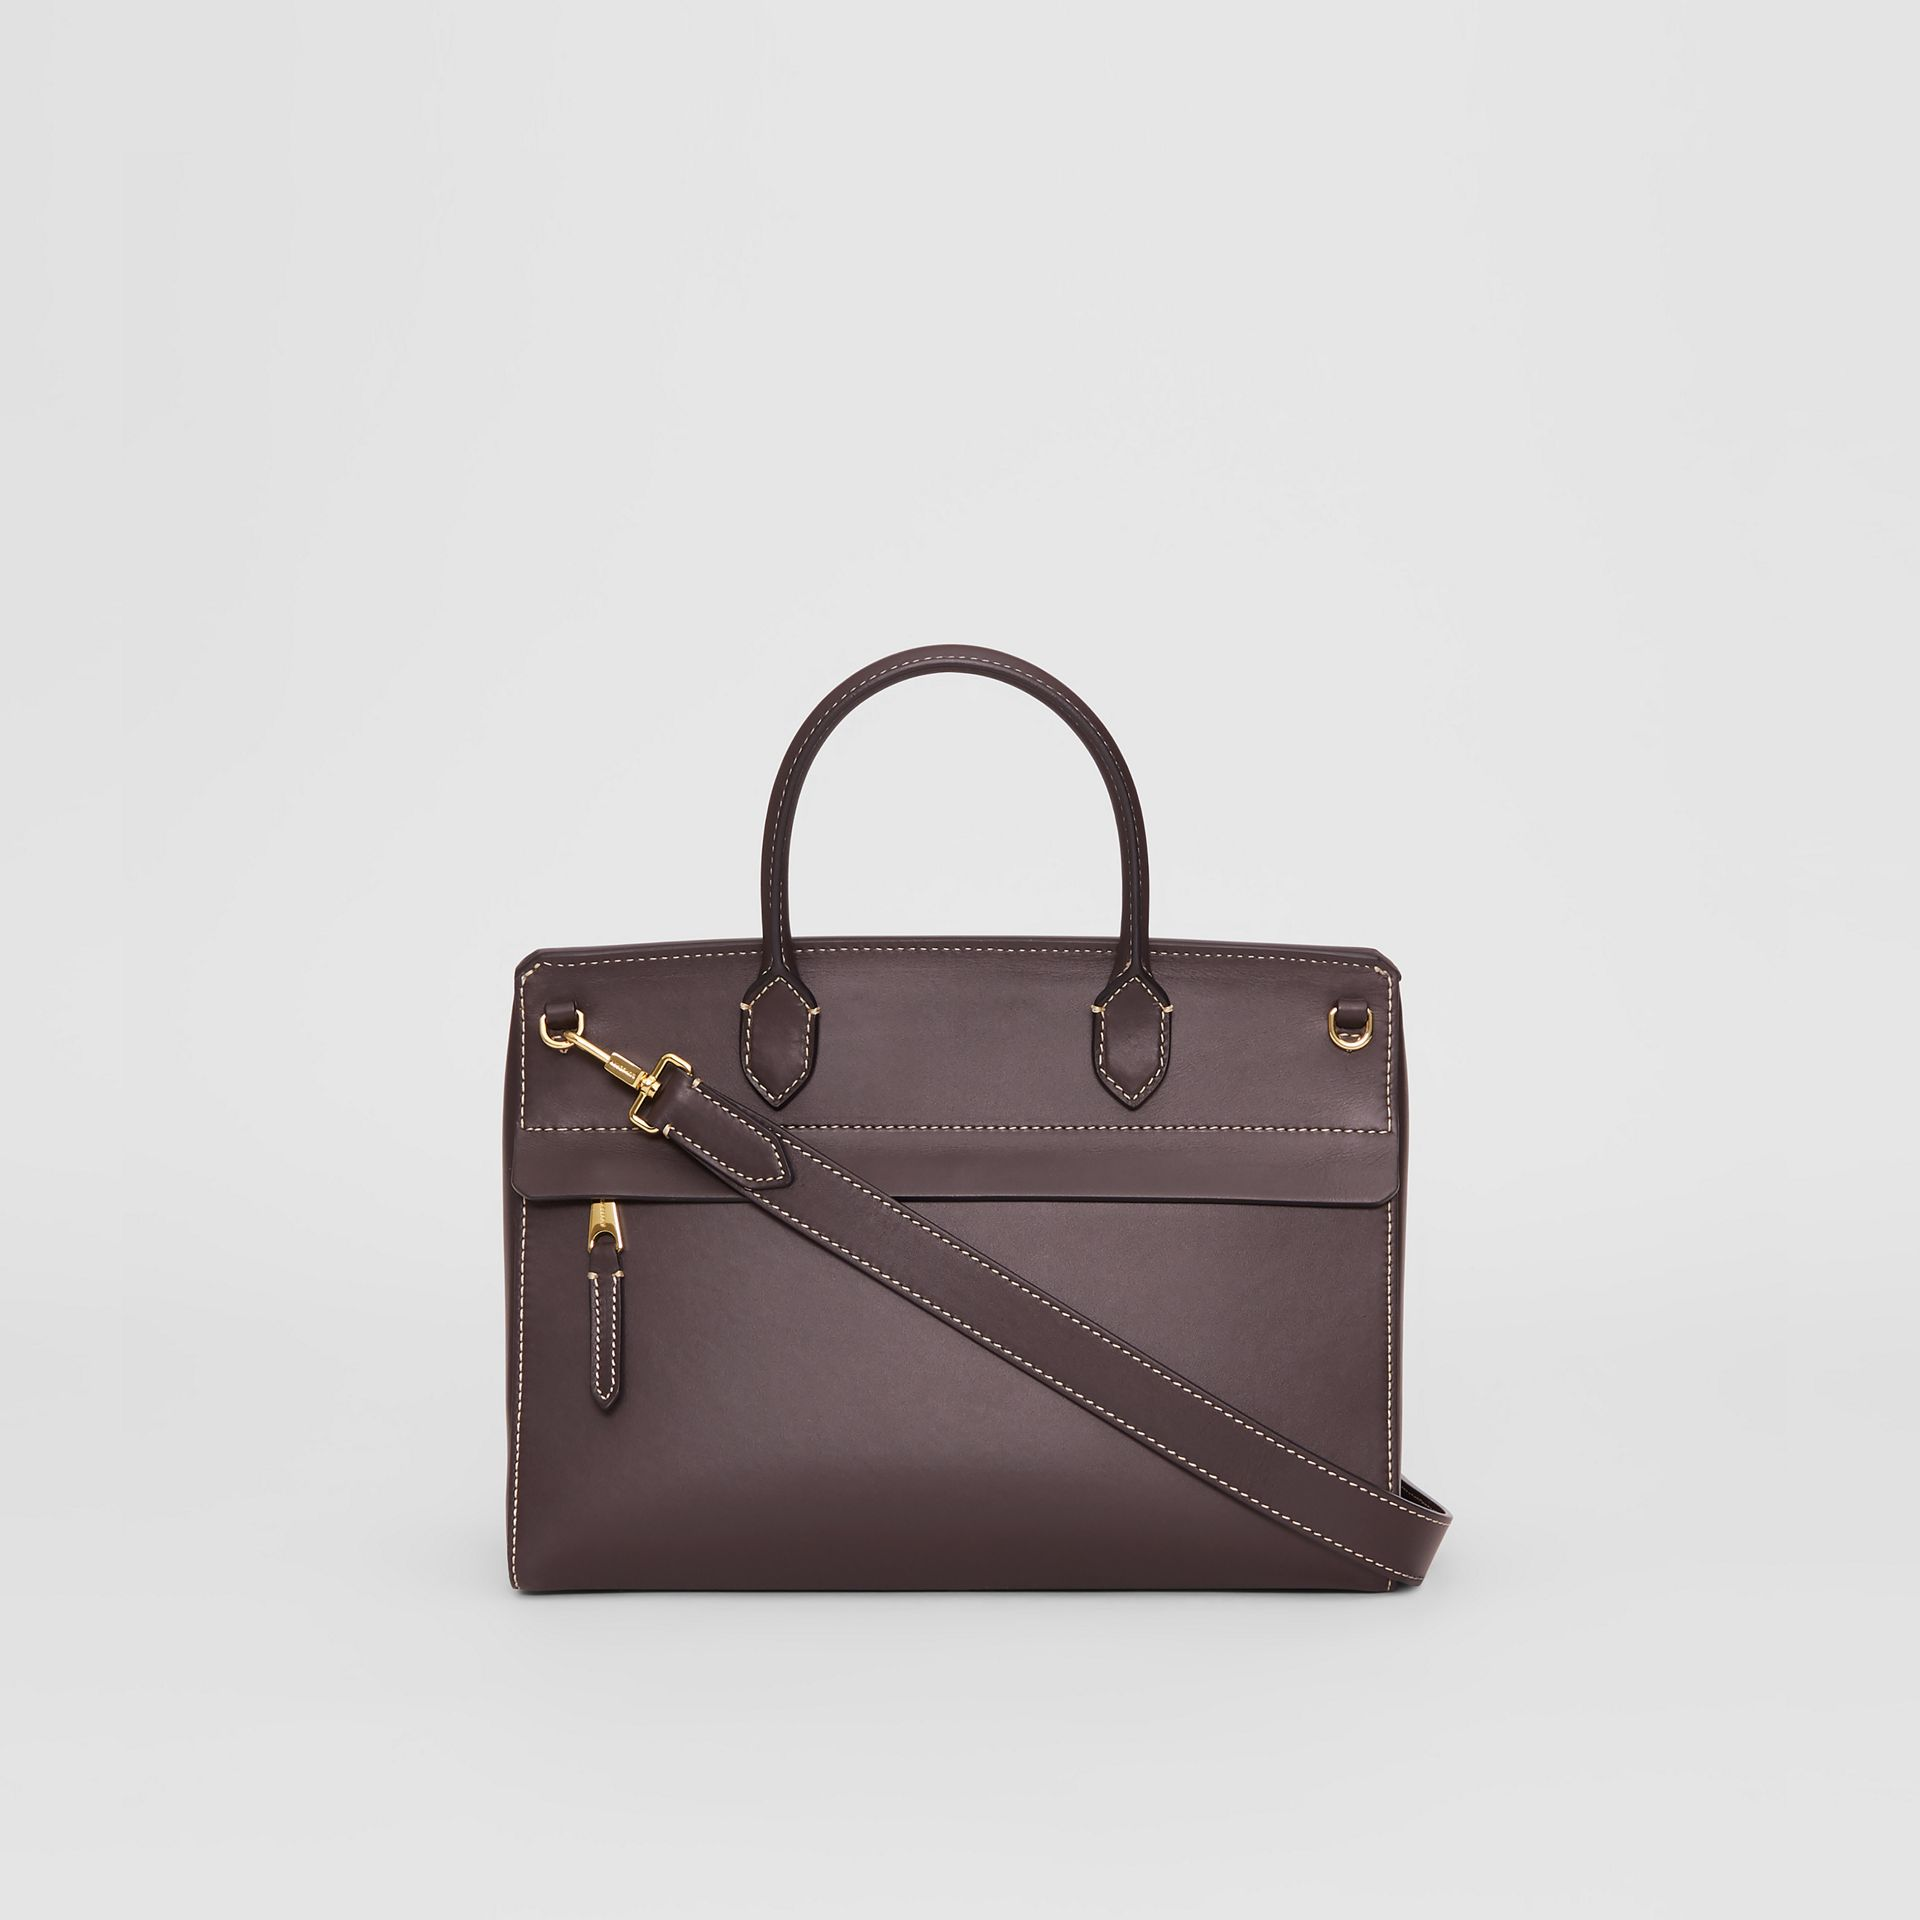 Small Leather Elizabeth Bag in Coffee - Women | Burberry United States - gallery image 7